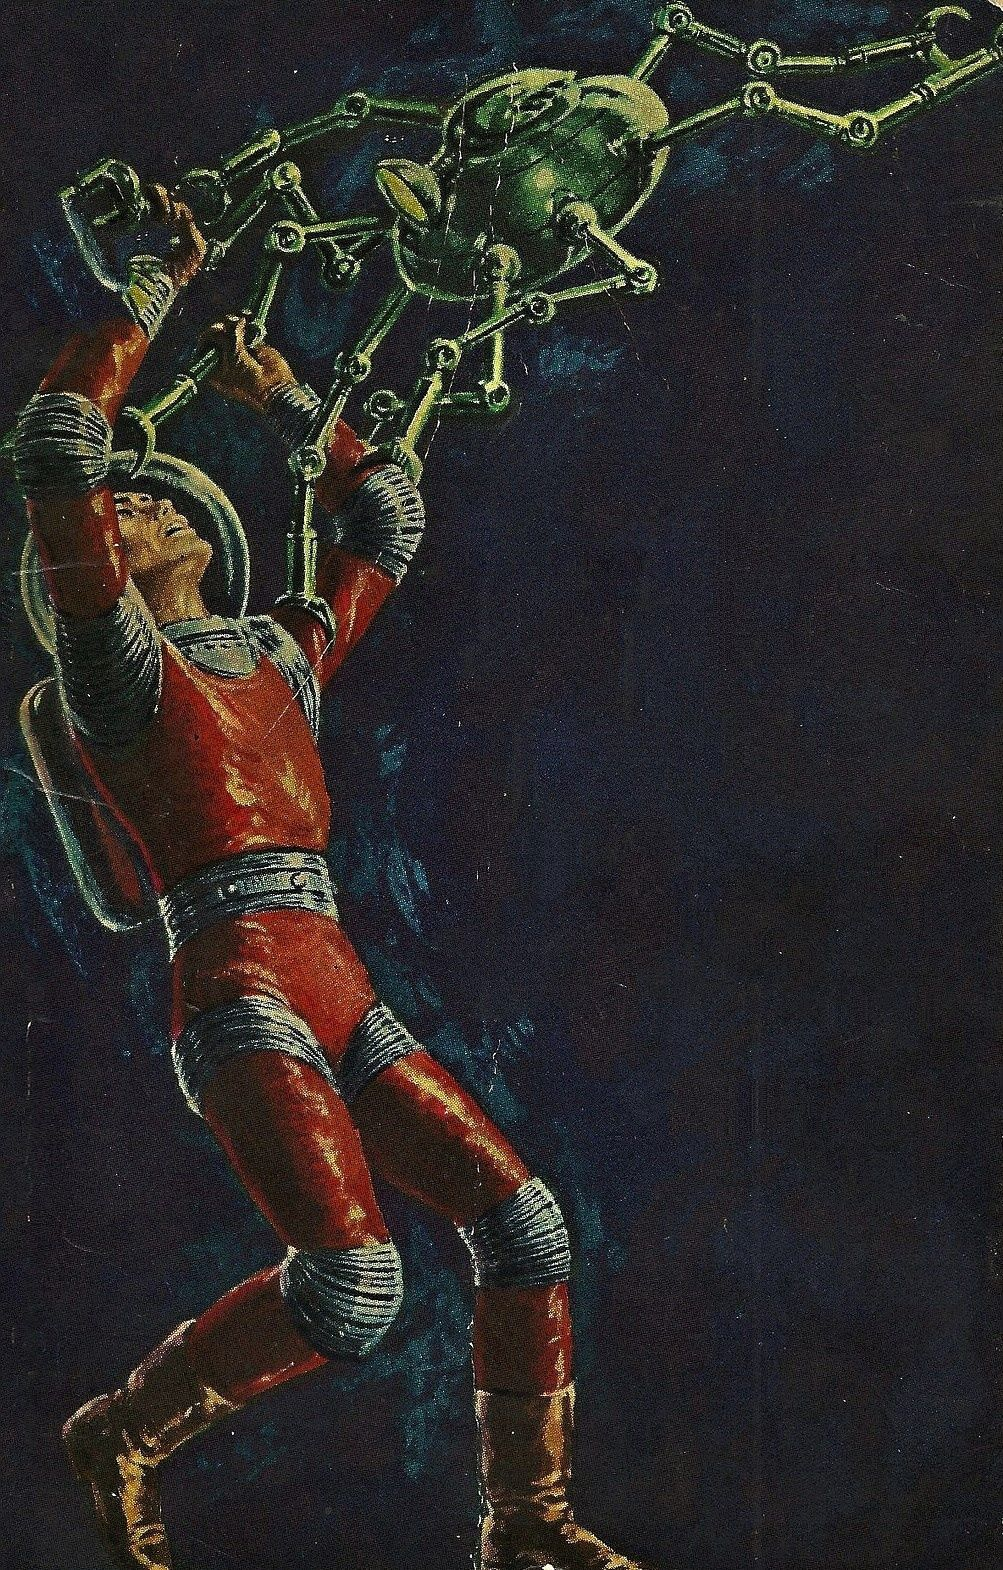 Ed Emshwiller - Rendezvous on a Lost World, 1961 / The Science Fiction Gallery